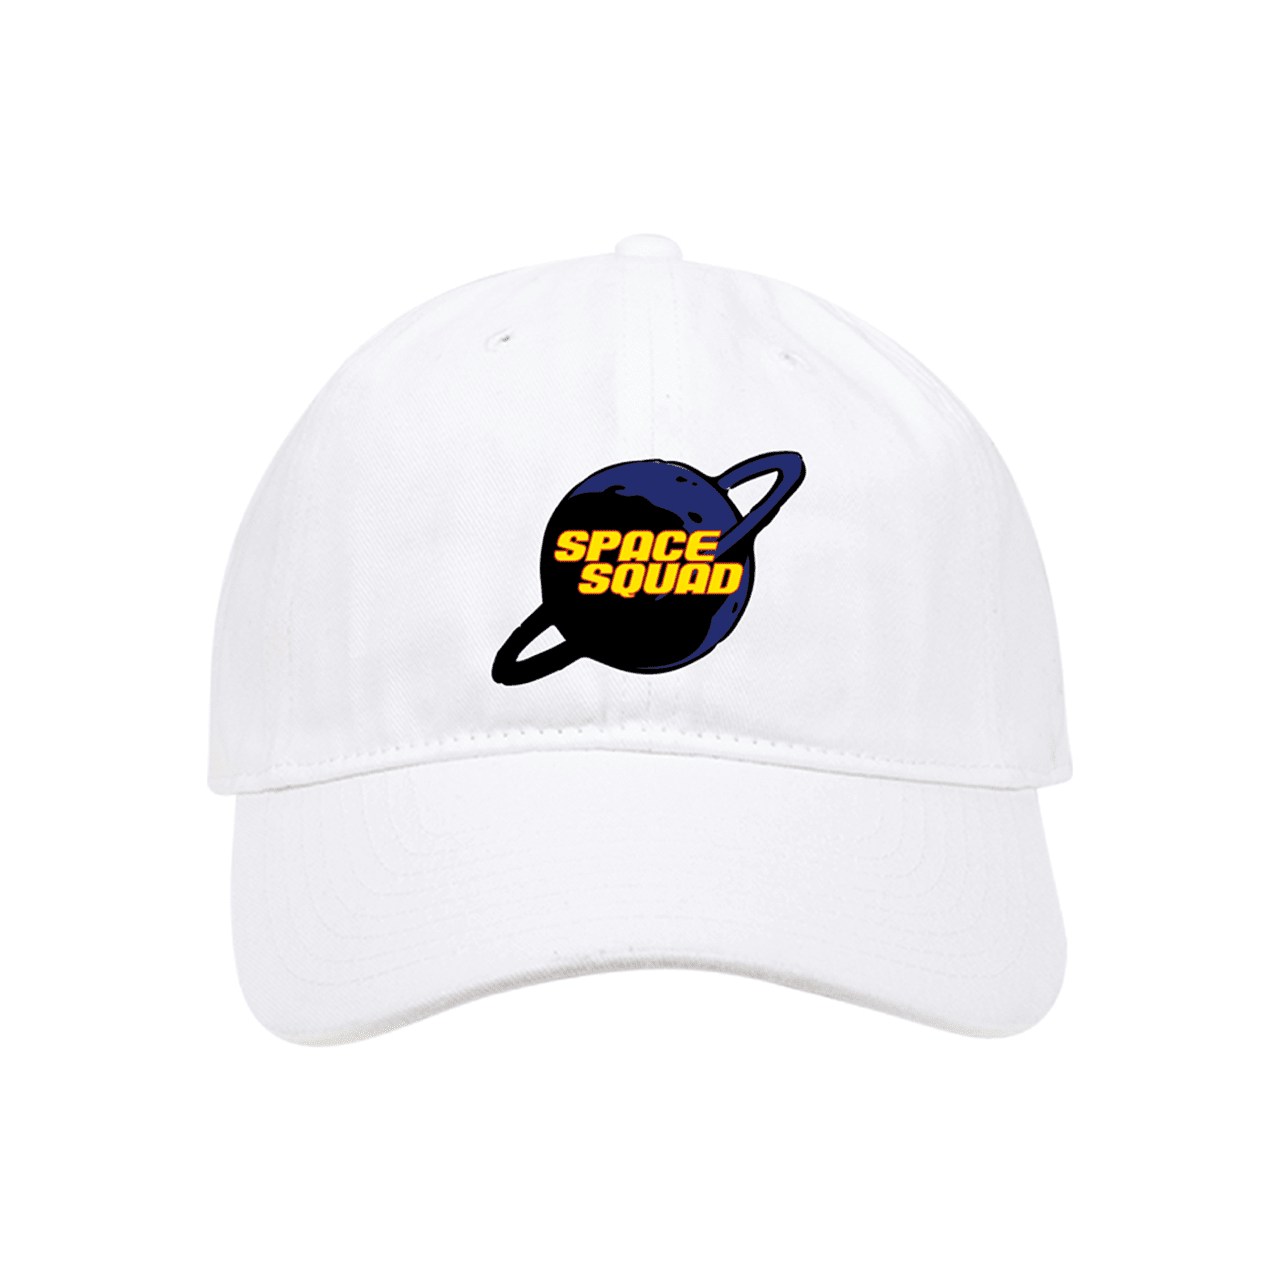 BT21 Space Squad Baseball Cap - 1